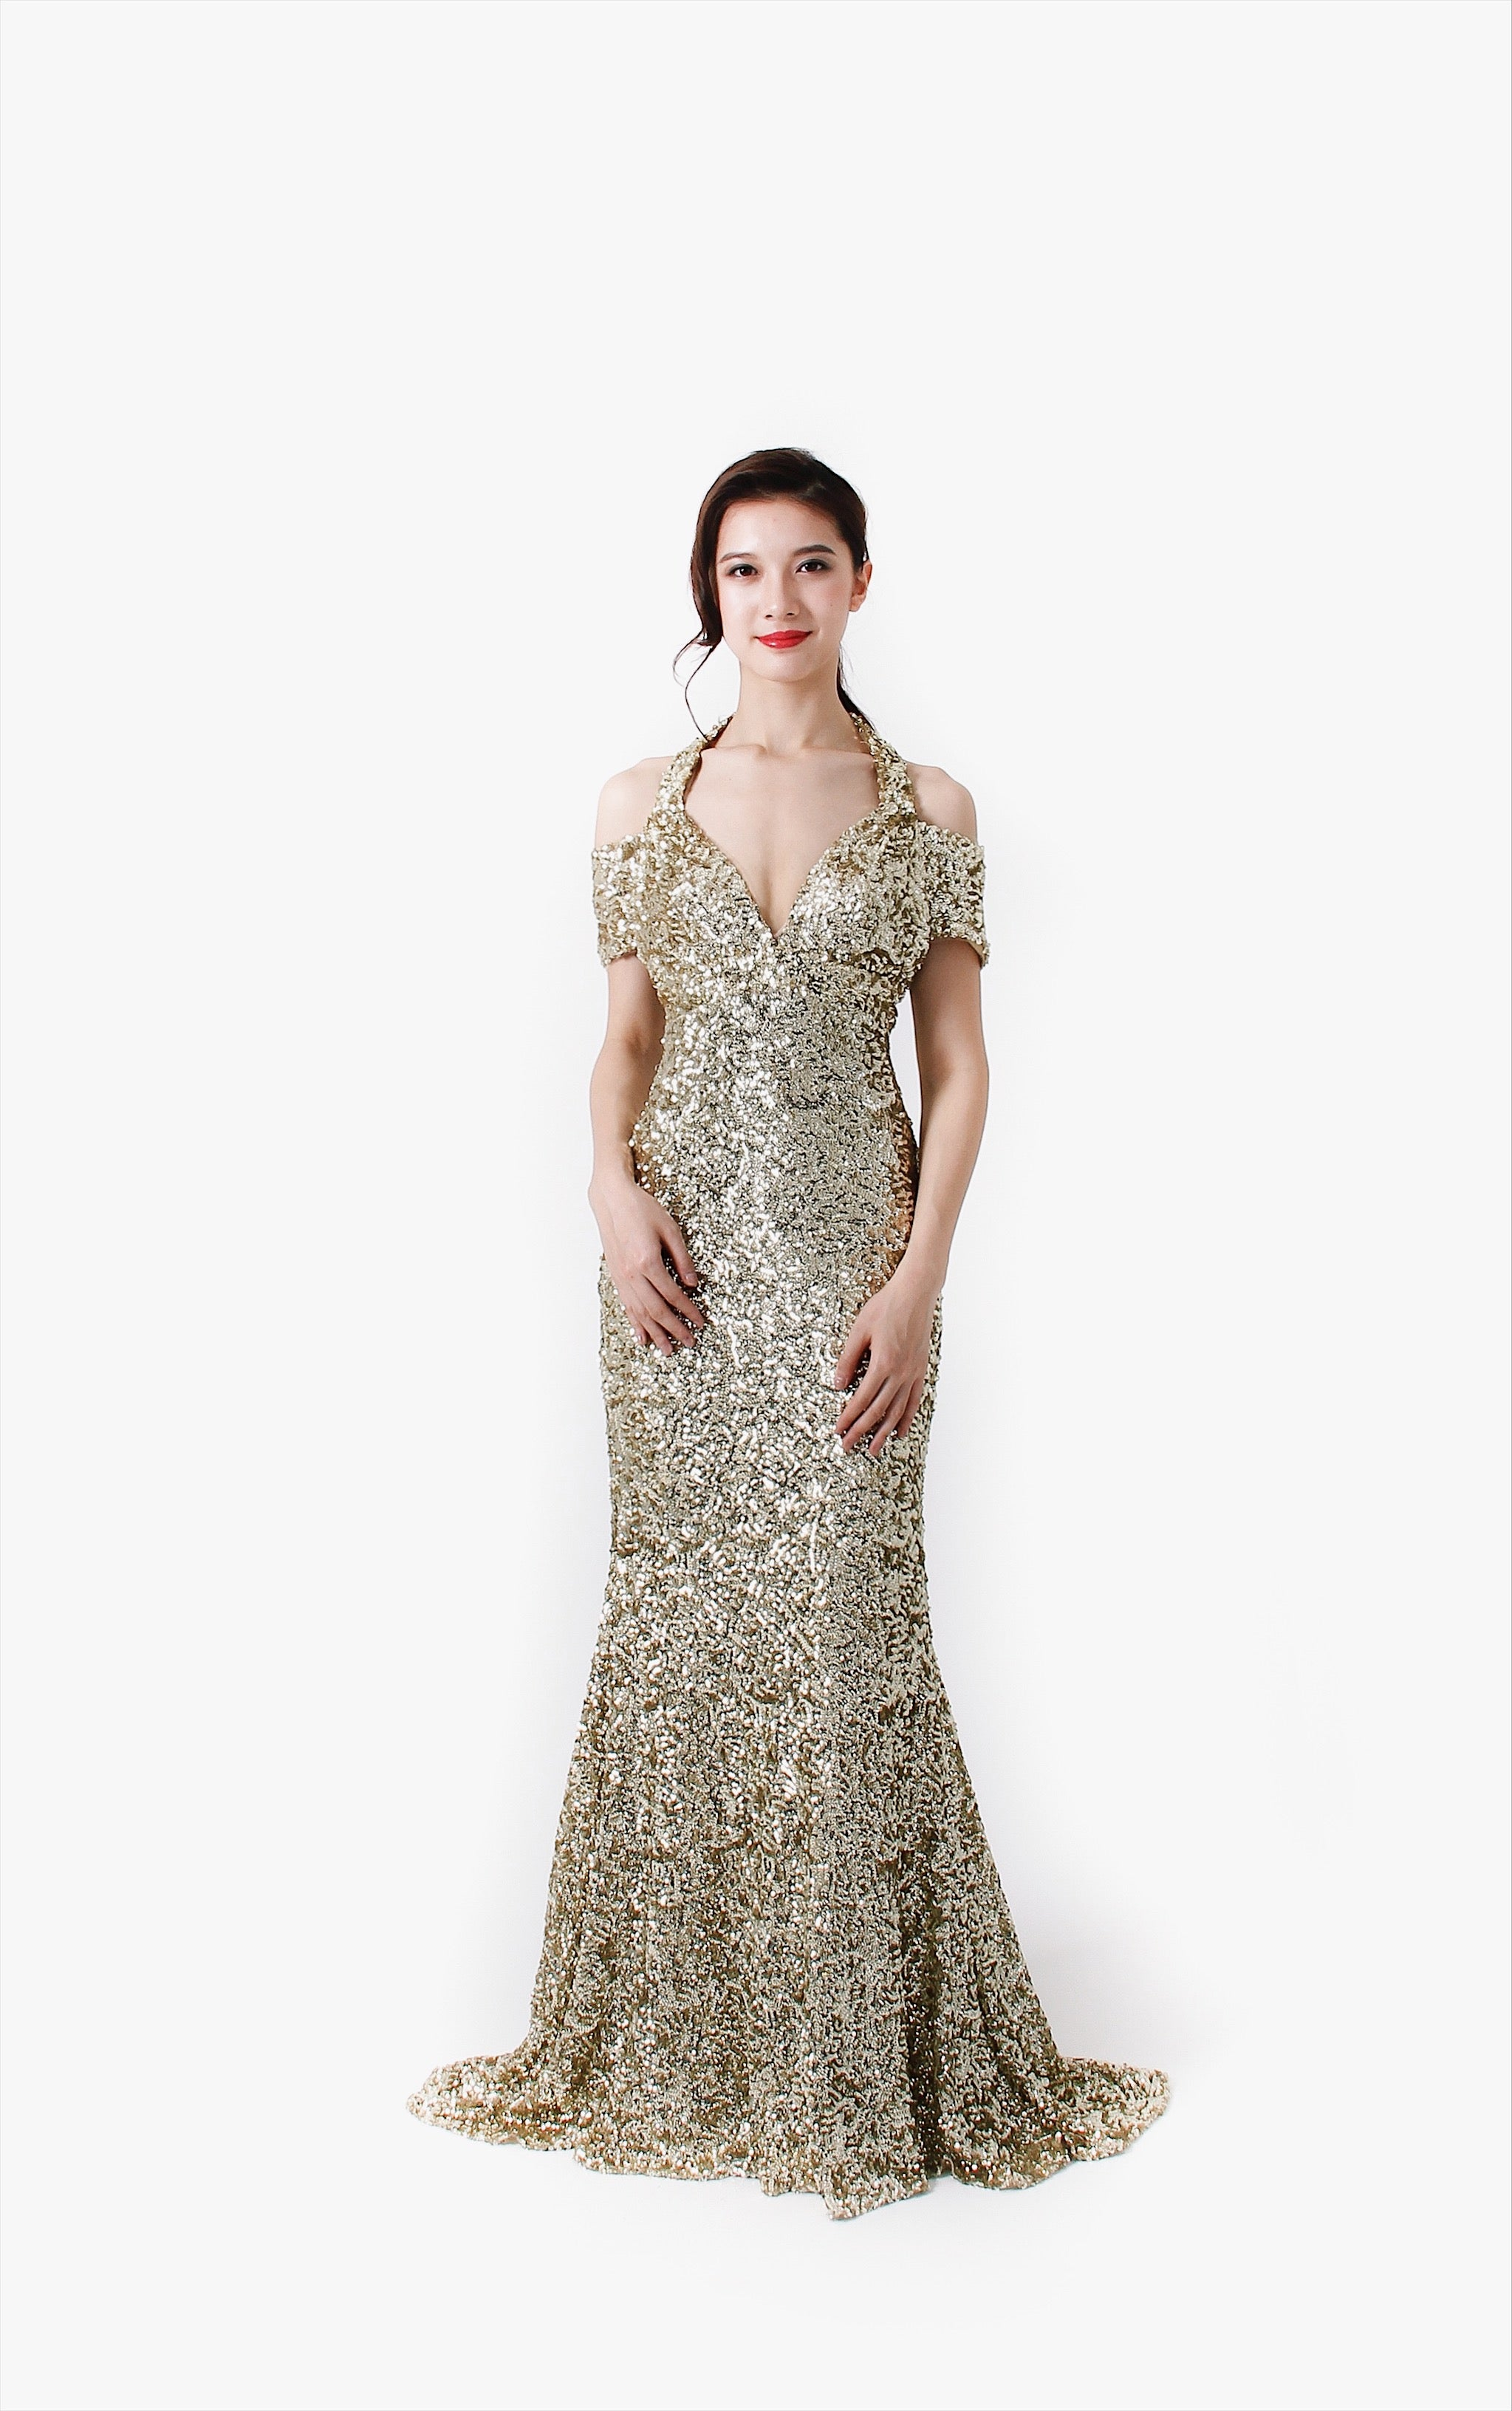 Crystal Pop Gold Dress